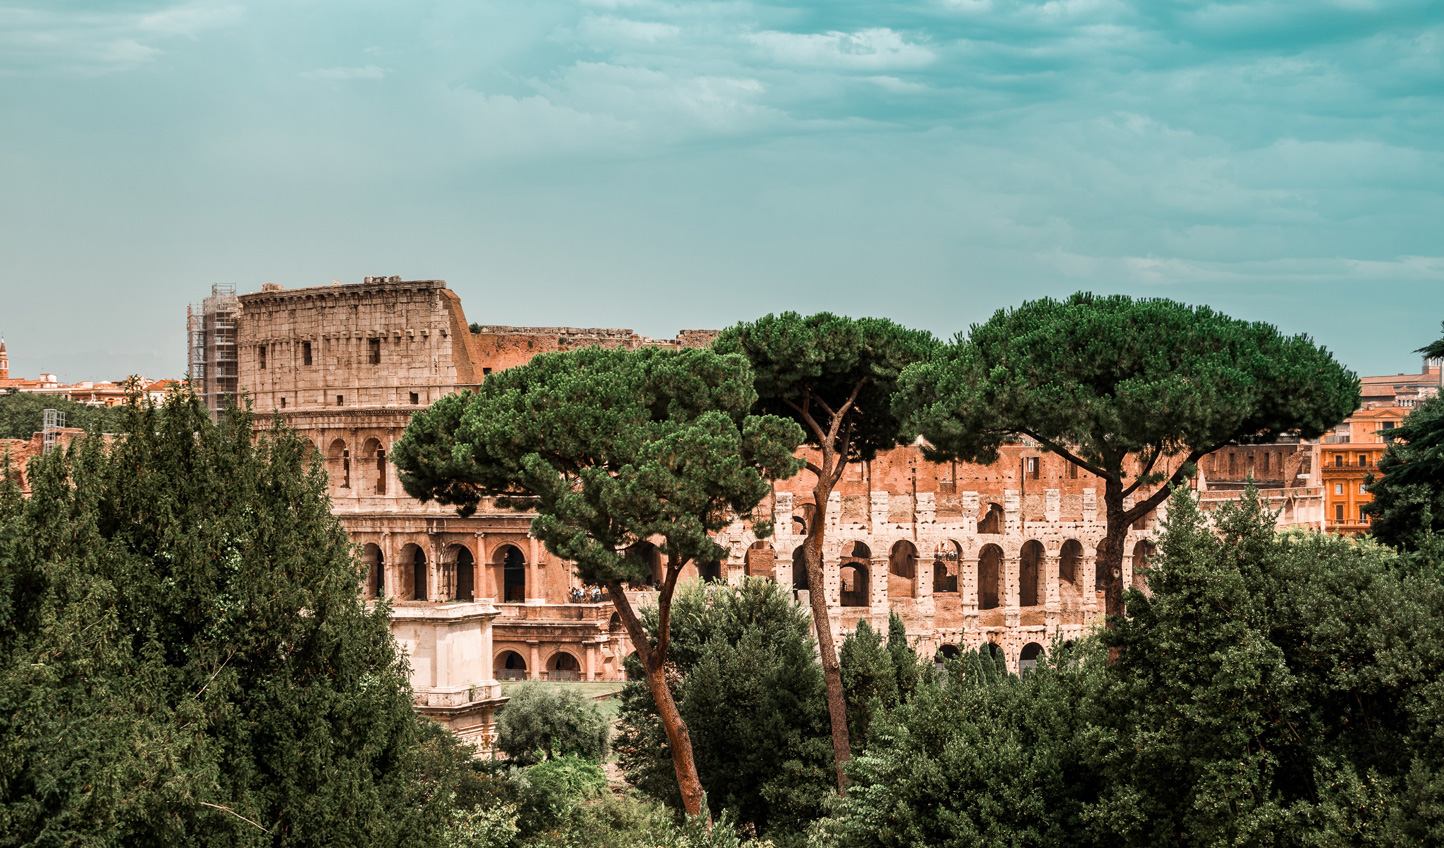 Iconic architecture and irresistible flavours of Rome